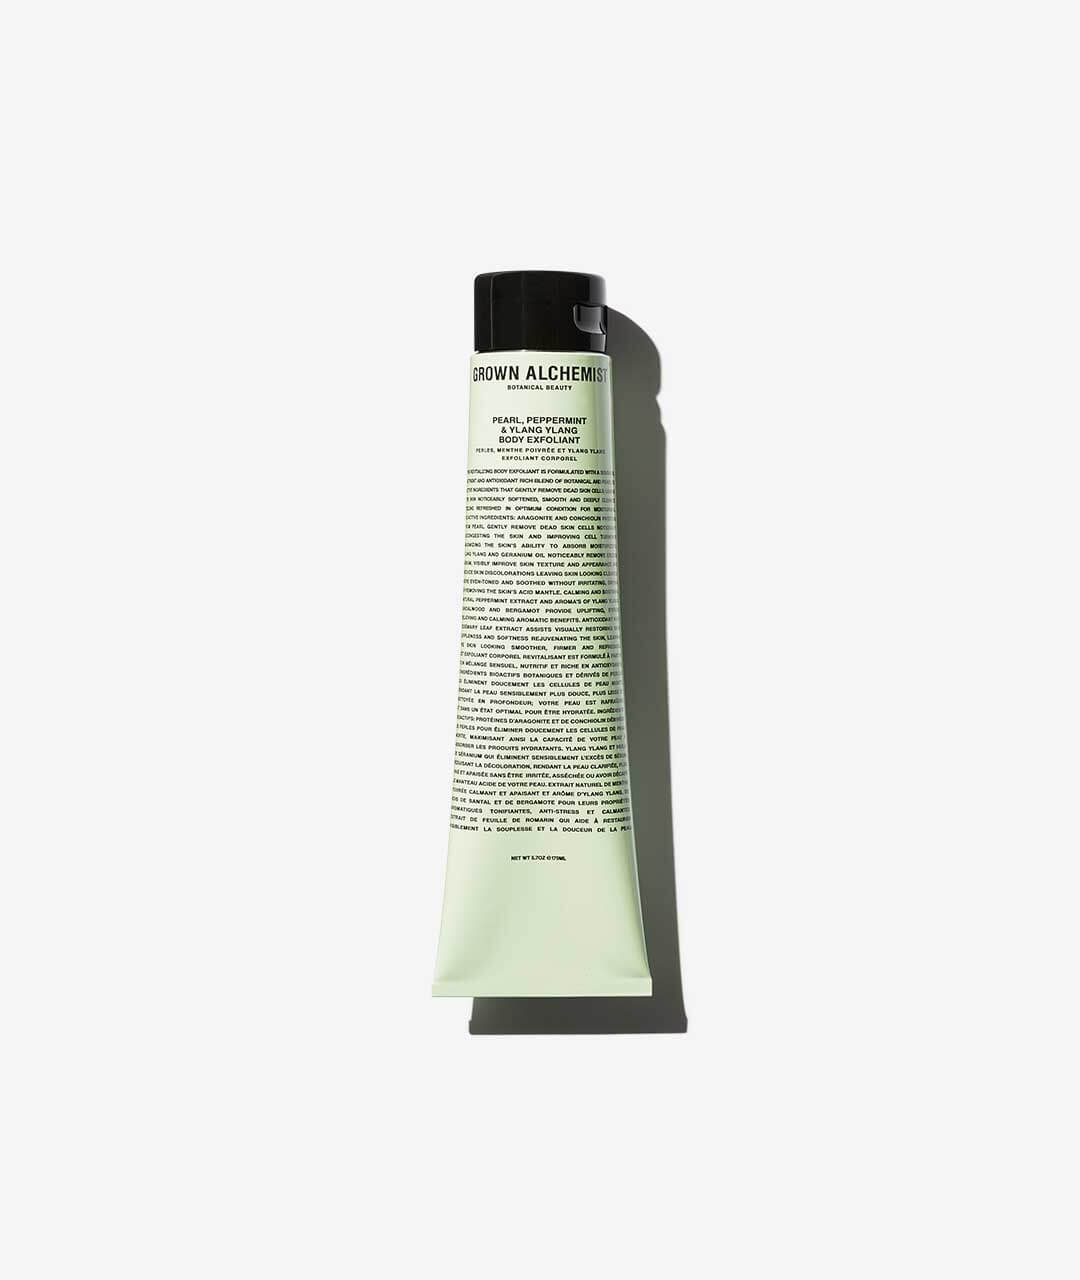 TWENTYTWONOTES Grown Alchemist scrub Body Exfoliant